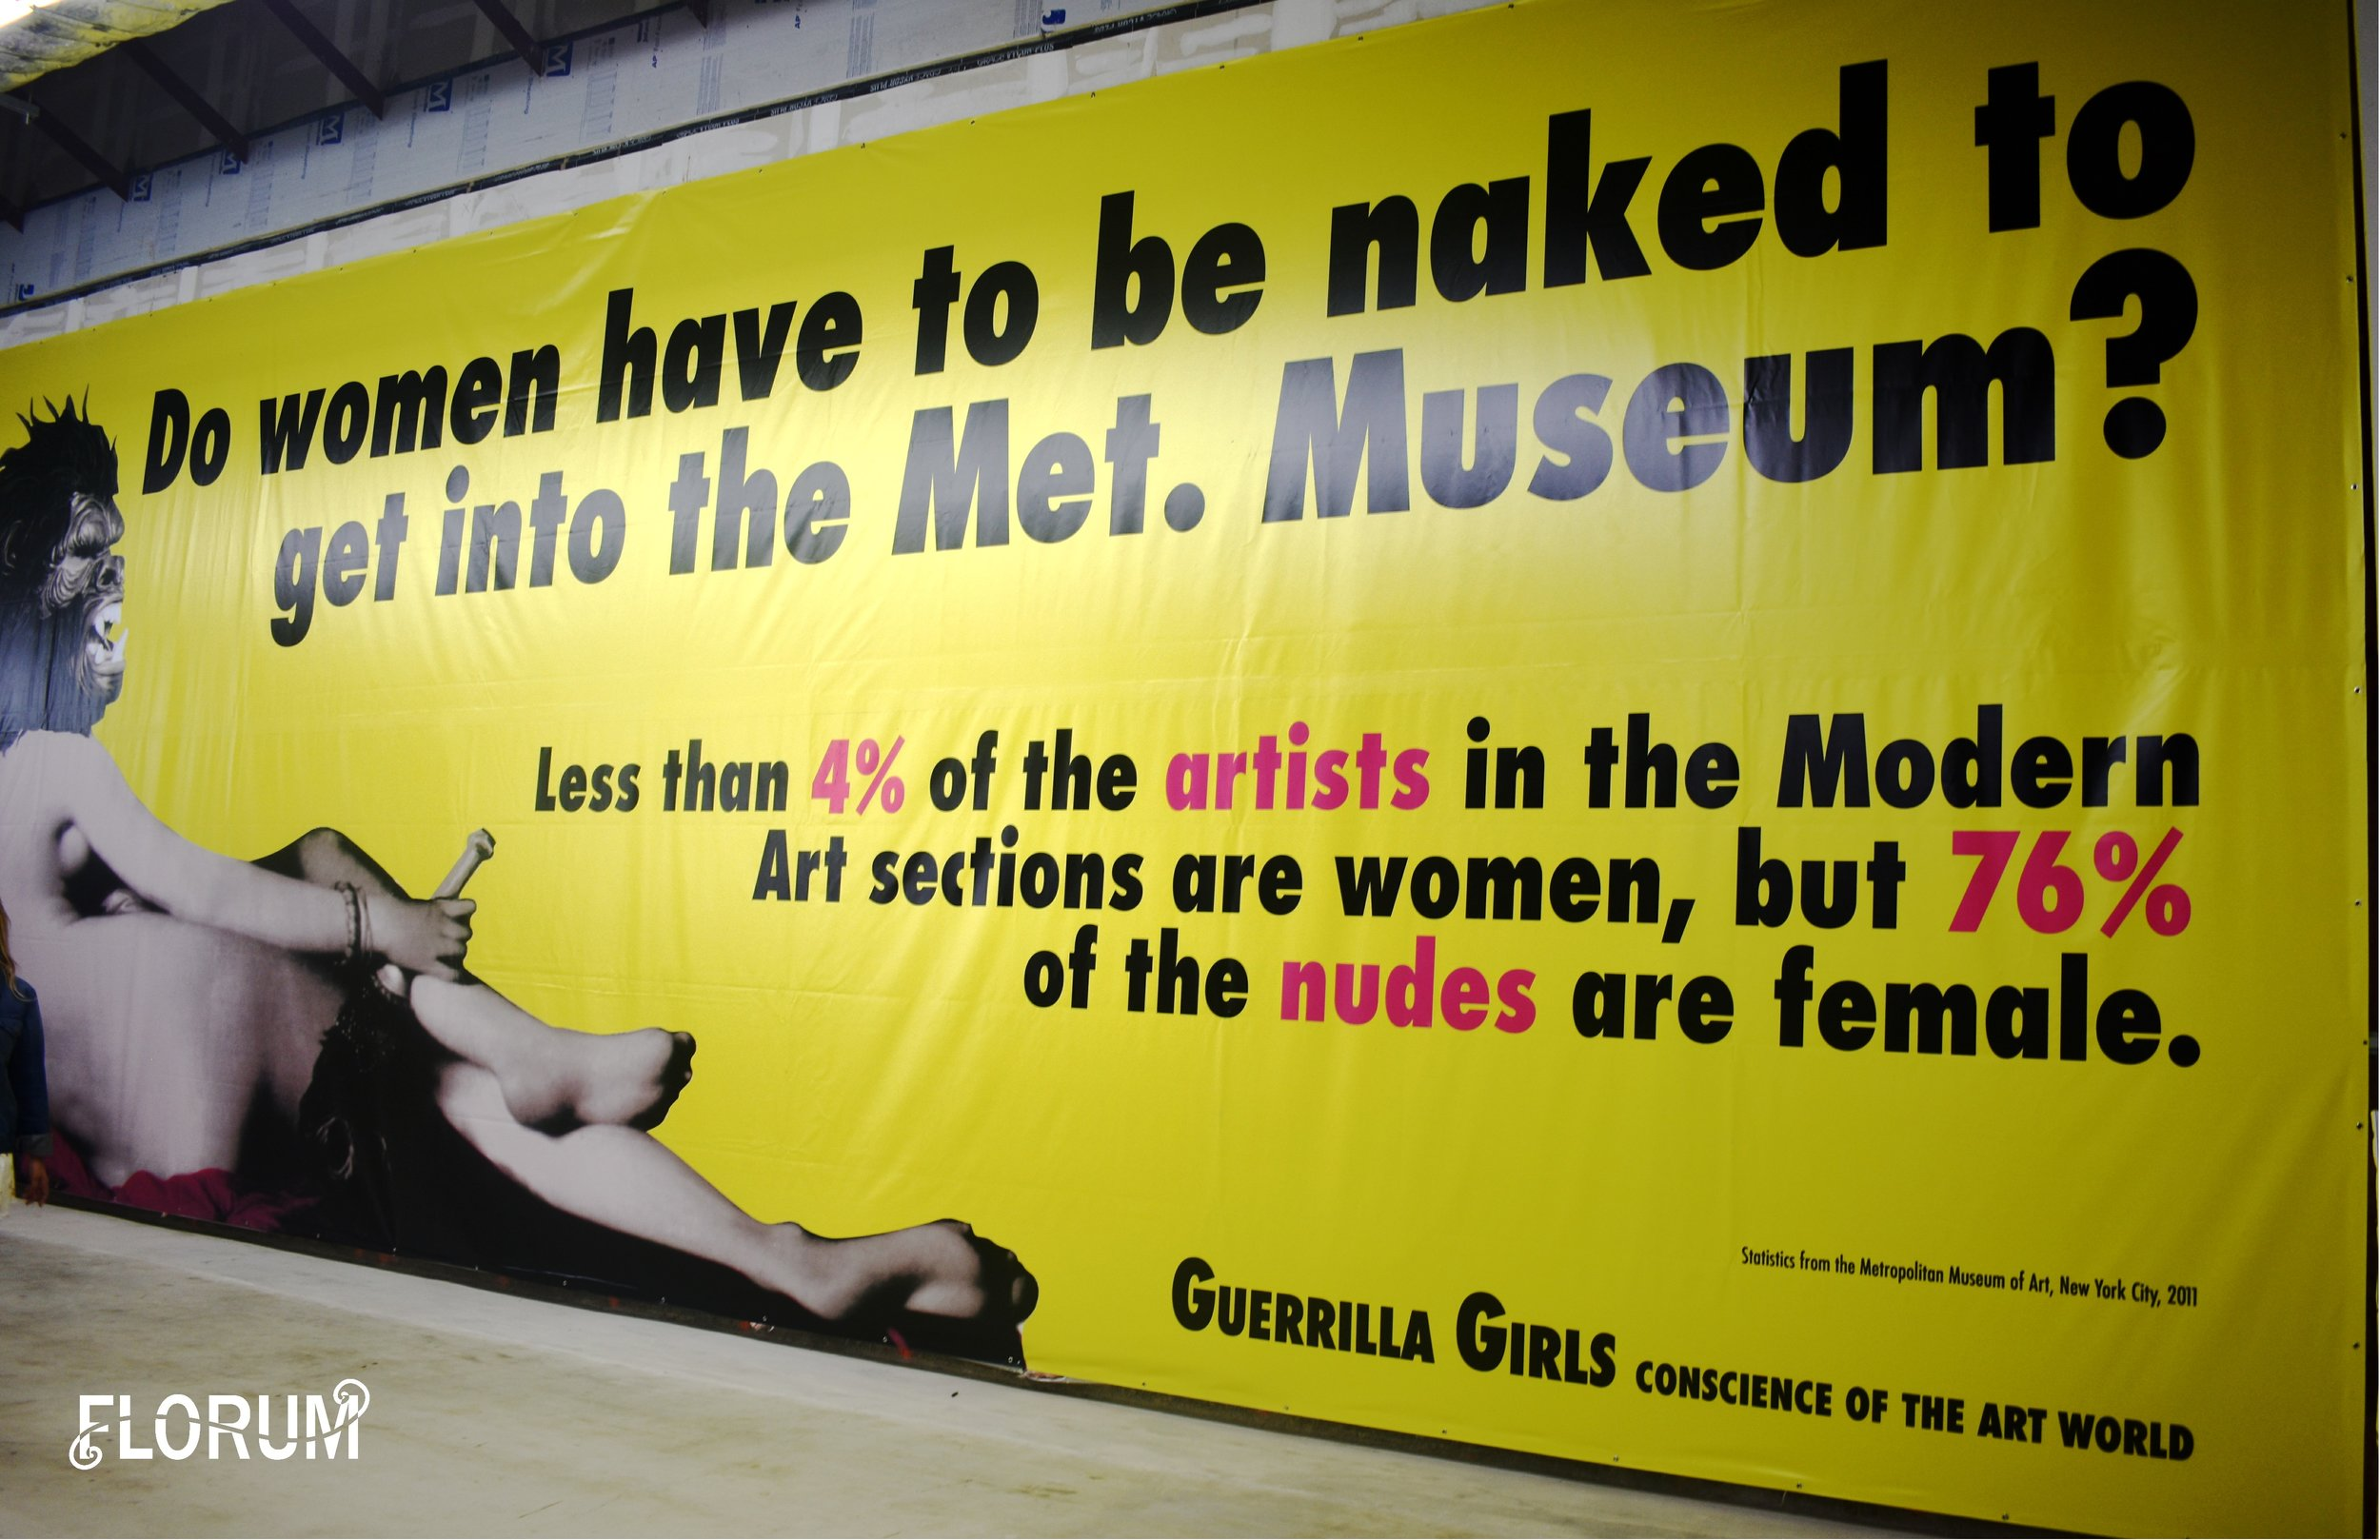 Less than 4% of the artists in the Modern Art sections are women, but 76% of the nudes are female.